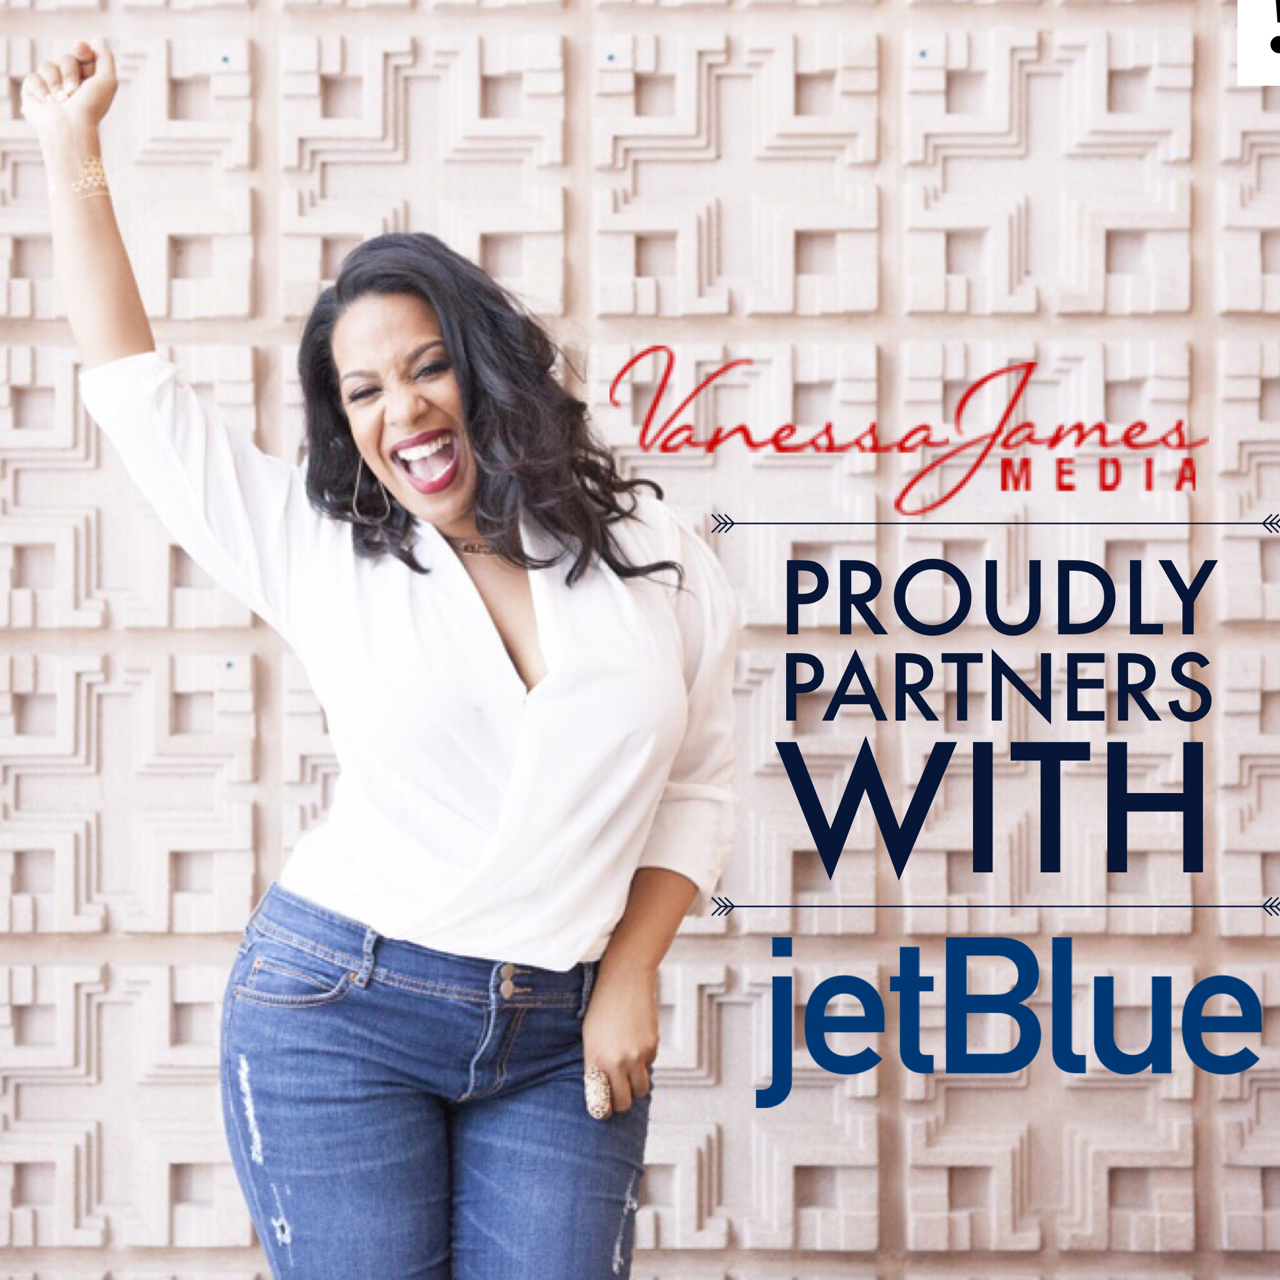 Jet Blue and VJMedia get ready to #JetSetGo.